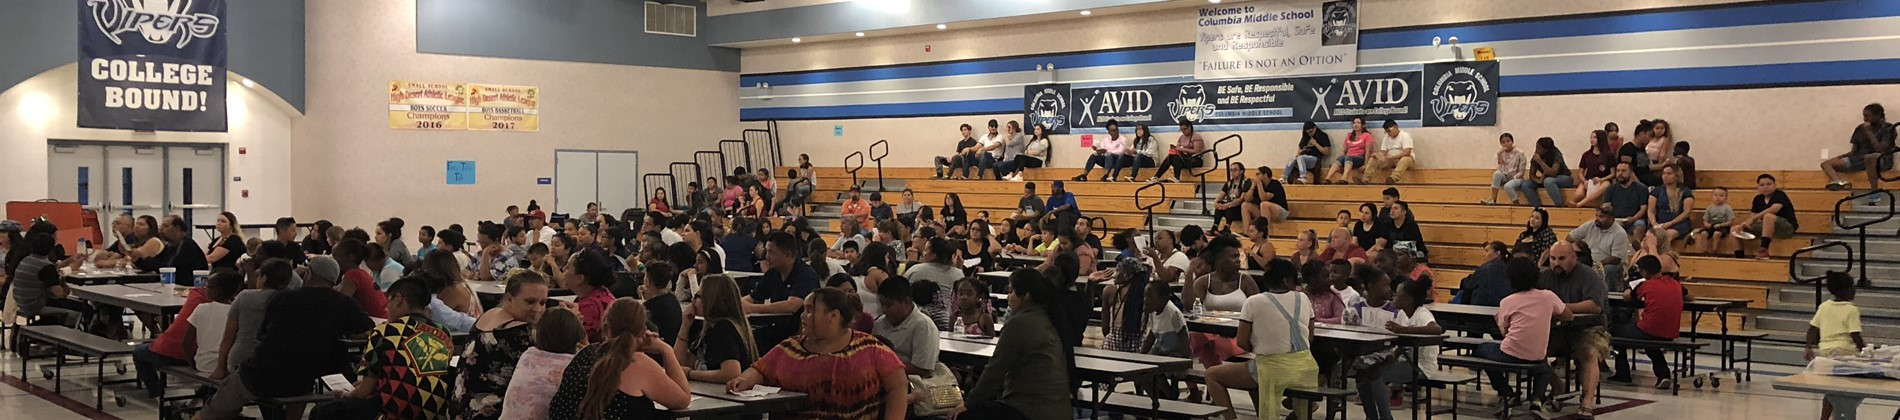 AVID Family Night 2018/2019!